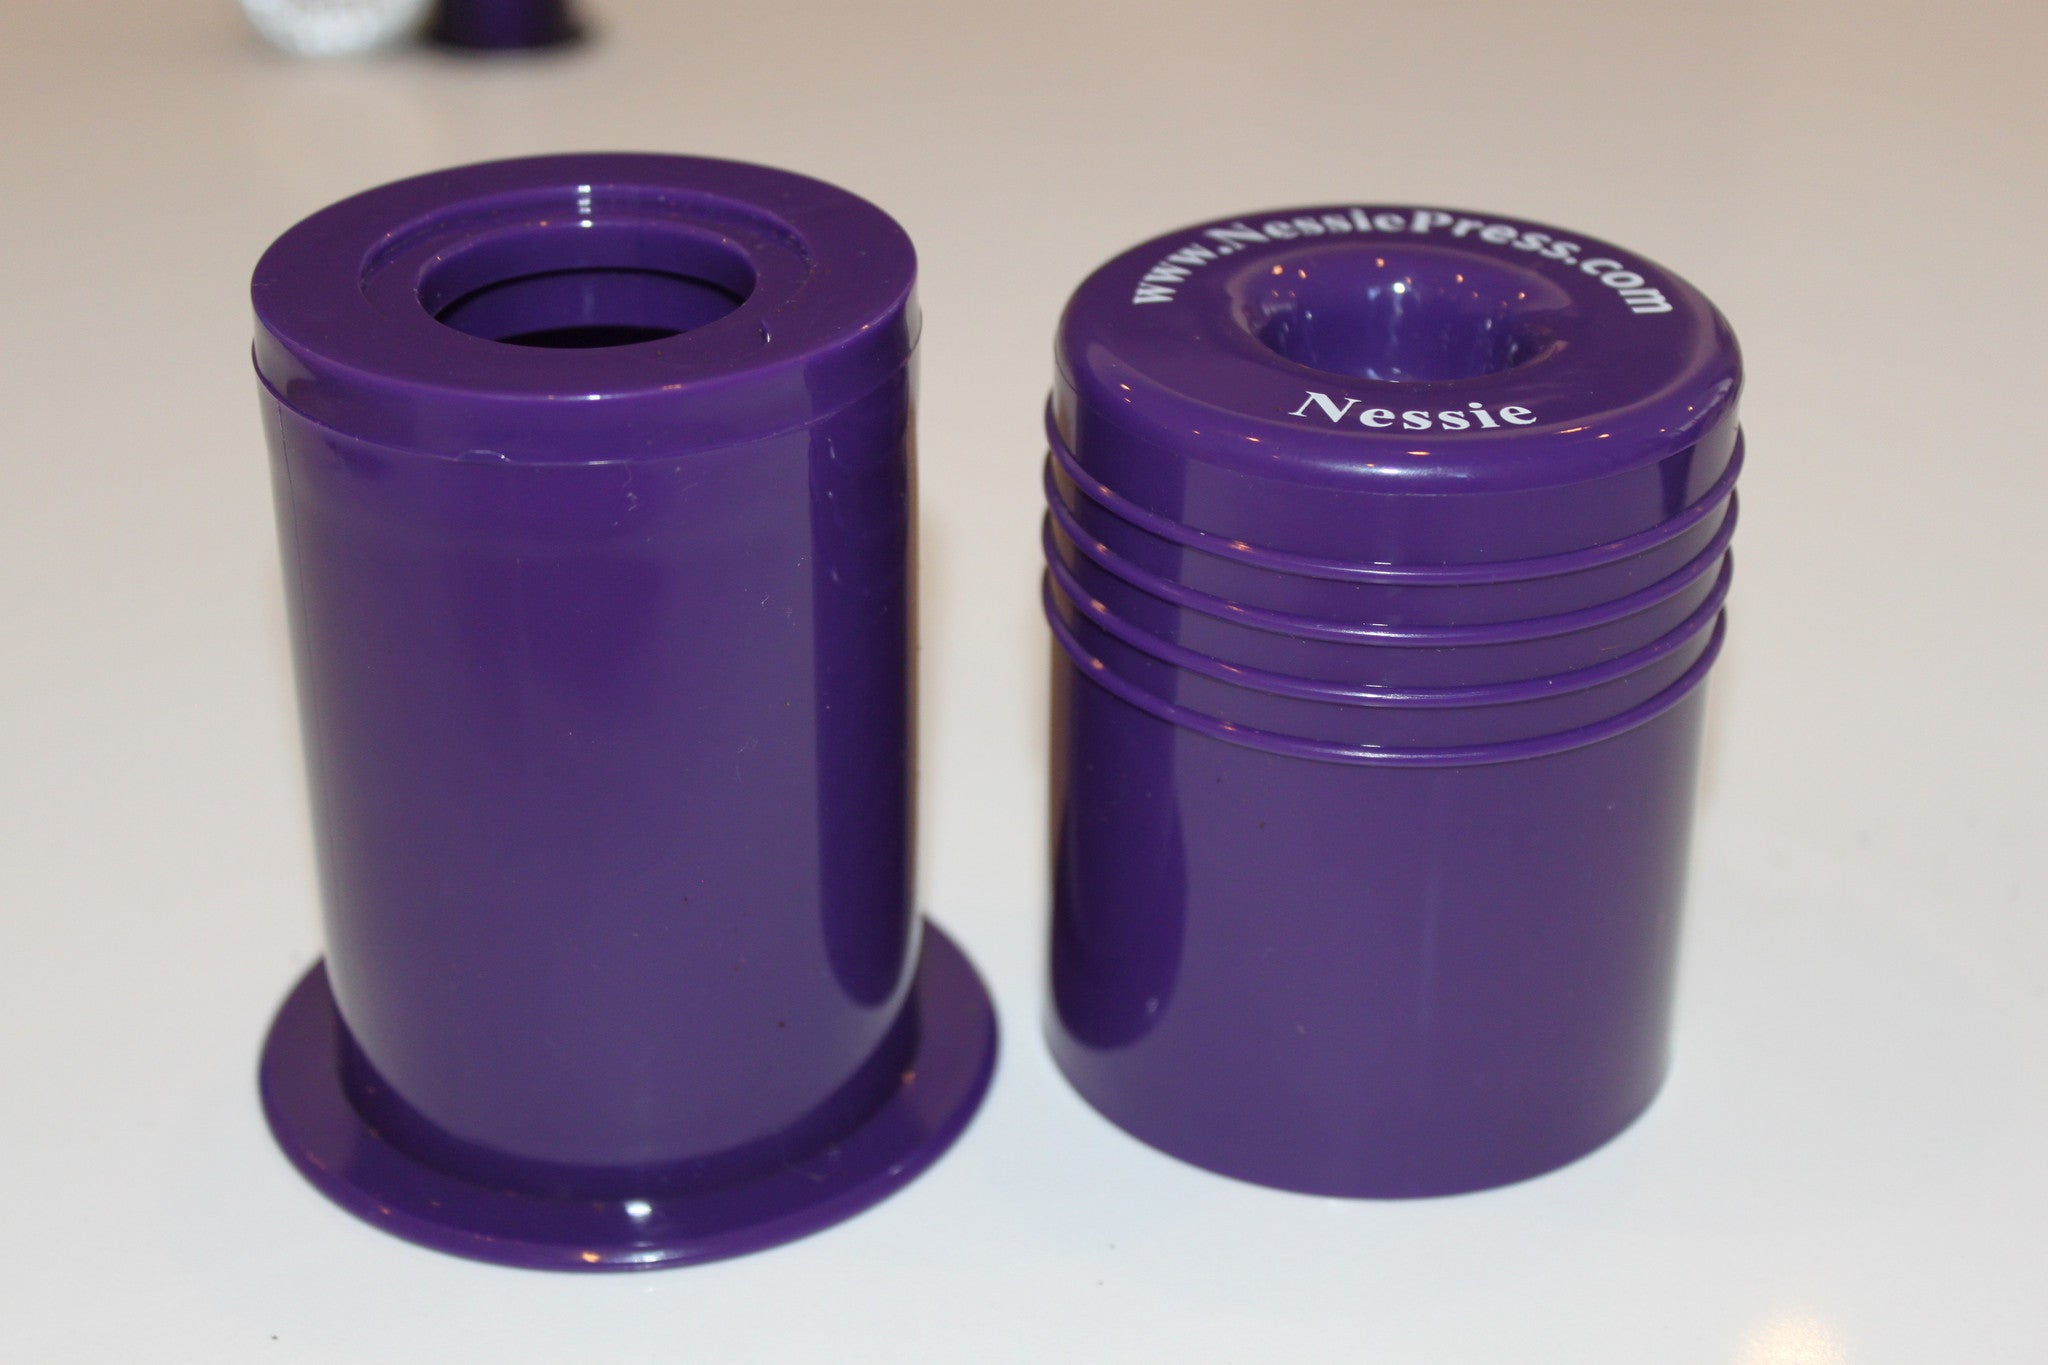 Upress Coffee Capsule Recycler (Purple) + postage - Nessie Press Family